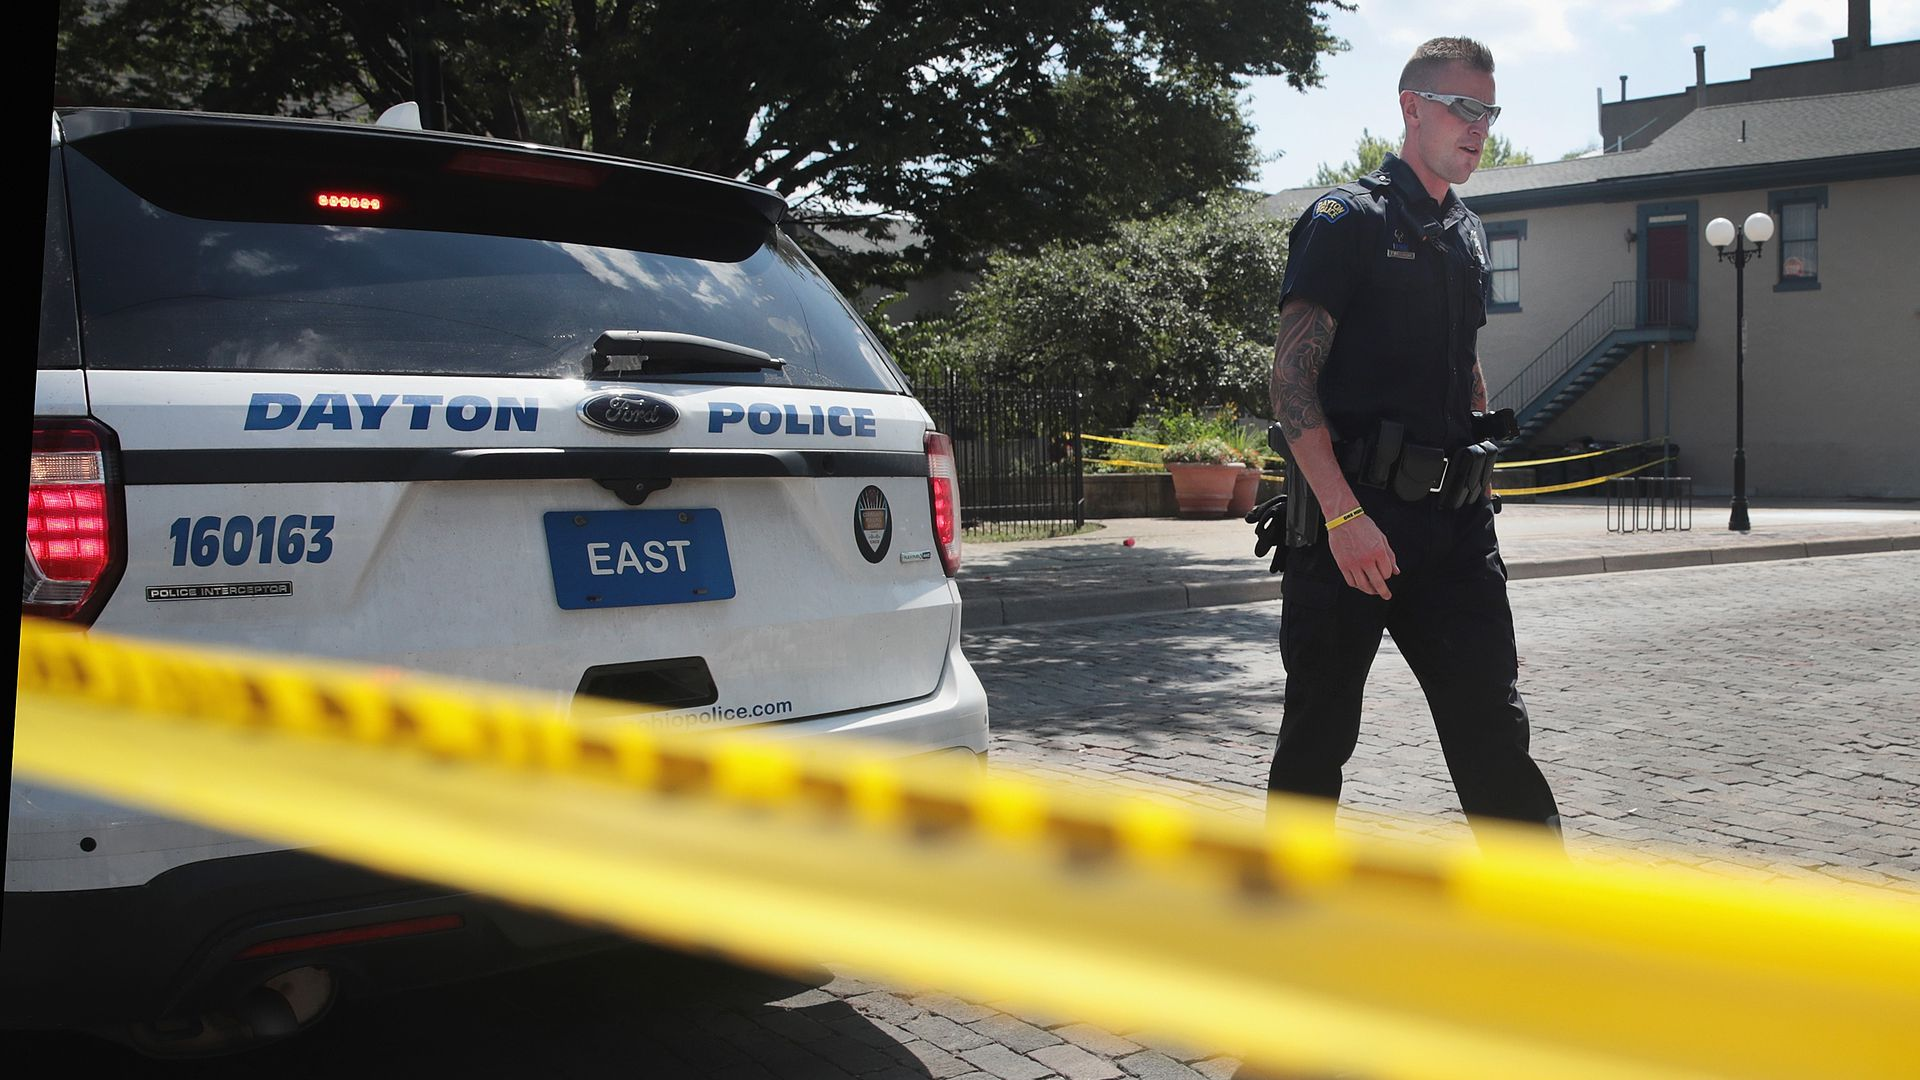 Police officer at the shooting scene in Dayton, Ohio. Photo: Scott Olson/Getty Images